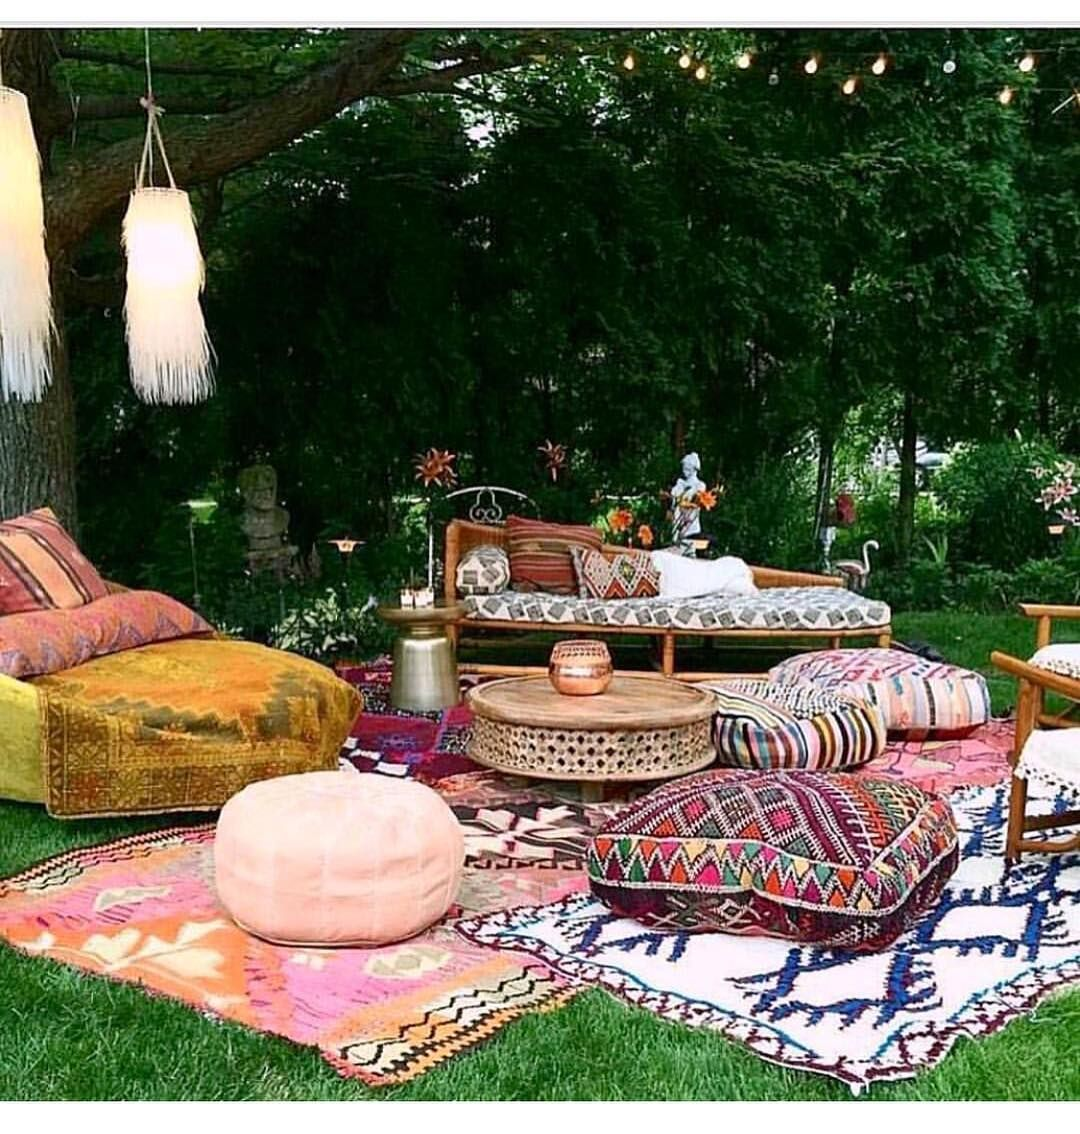 Outdoor Bohemian party with moroccan rugs and textiles, designed ...